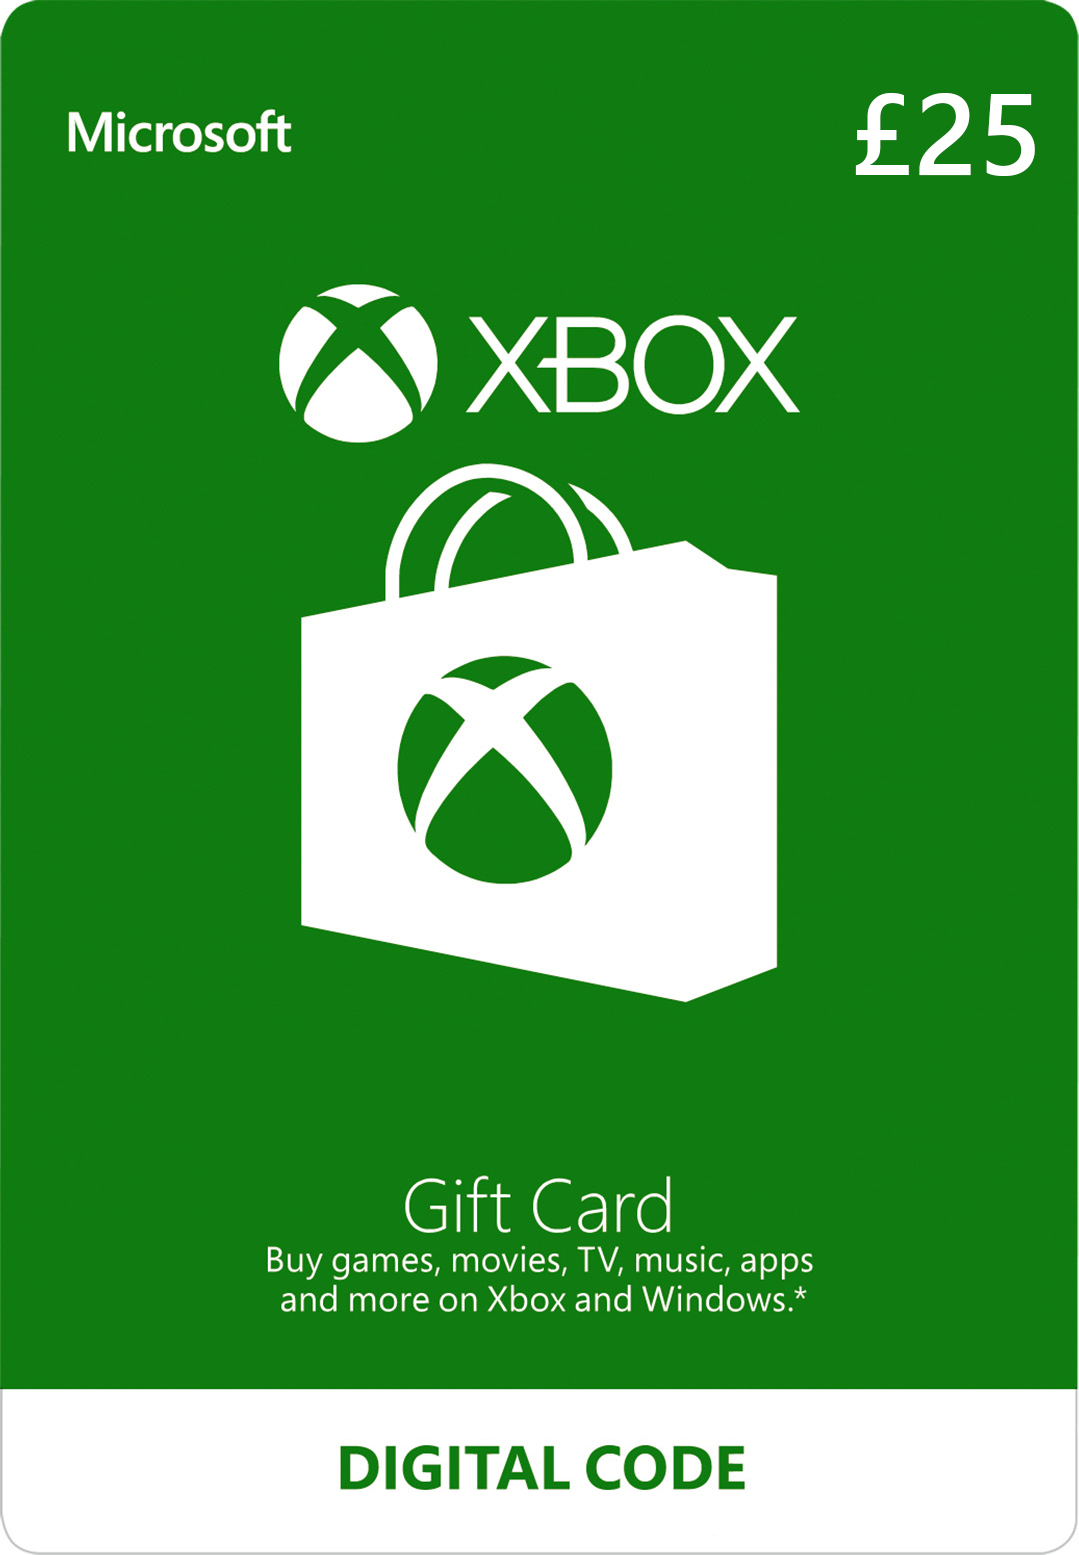 Xbox Digital Gift Card: £25.00